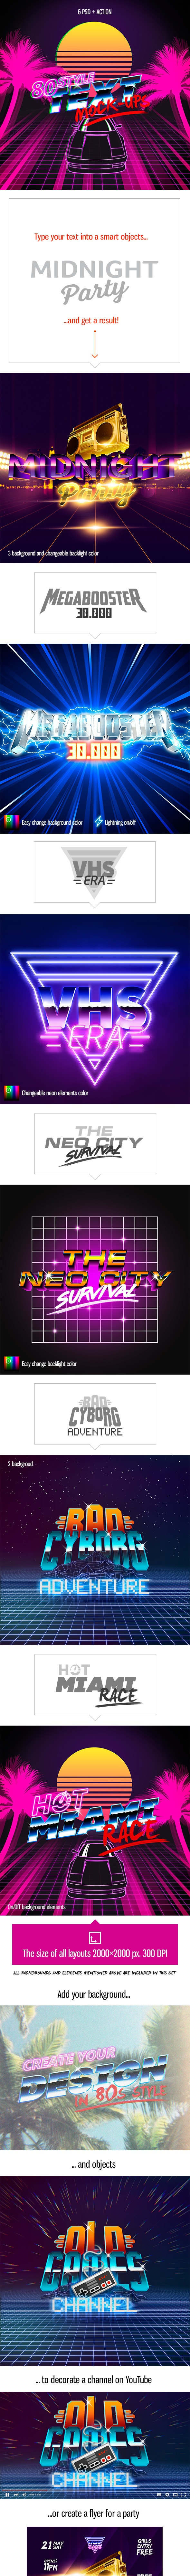 80s Text Mock-Ups - Text Effects Actions